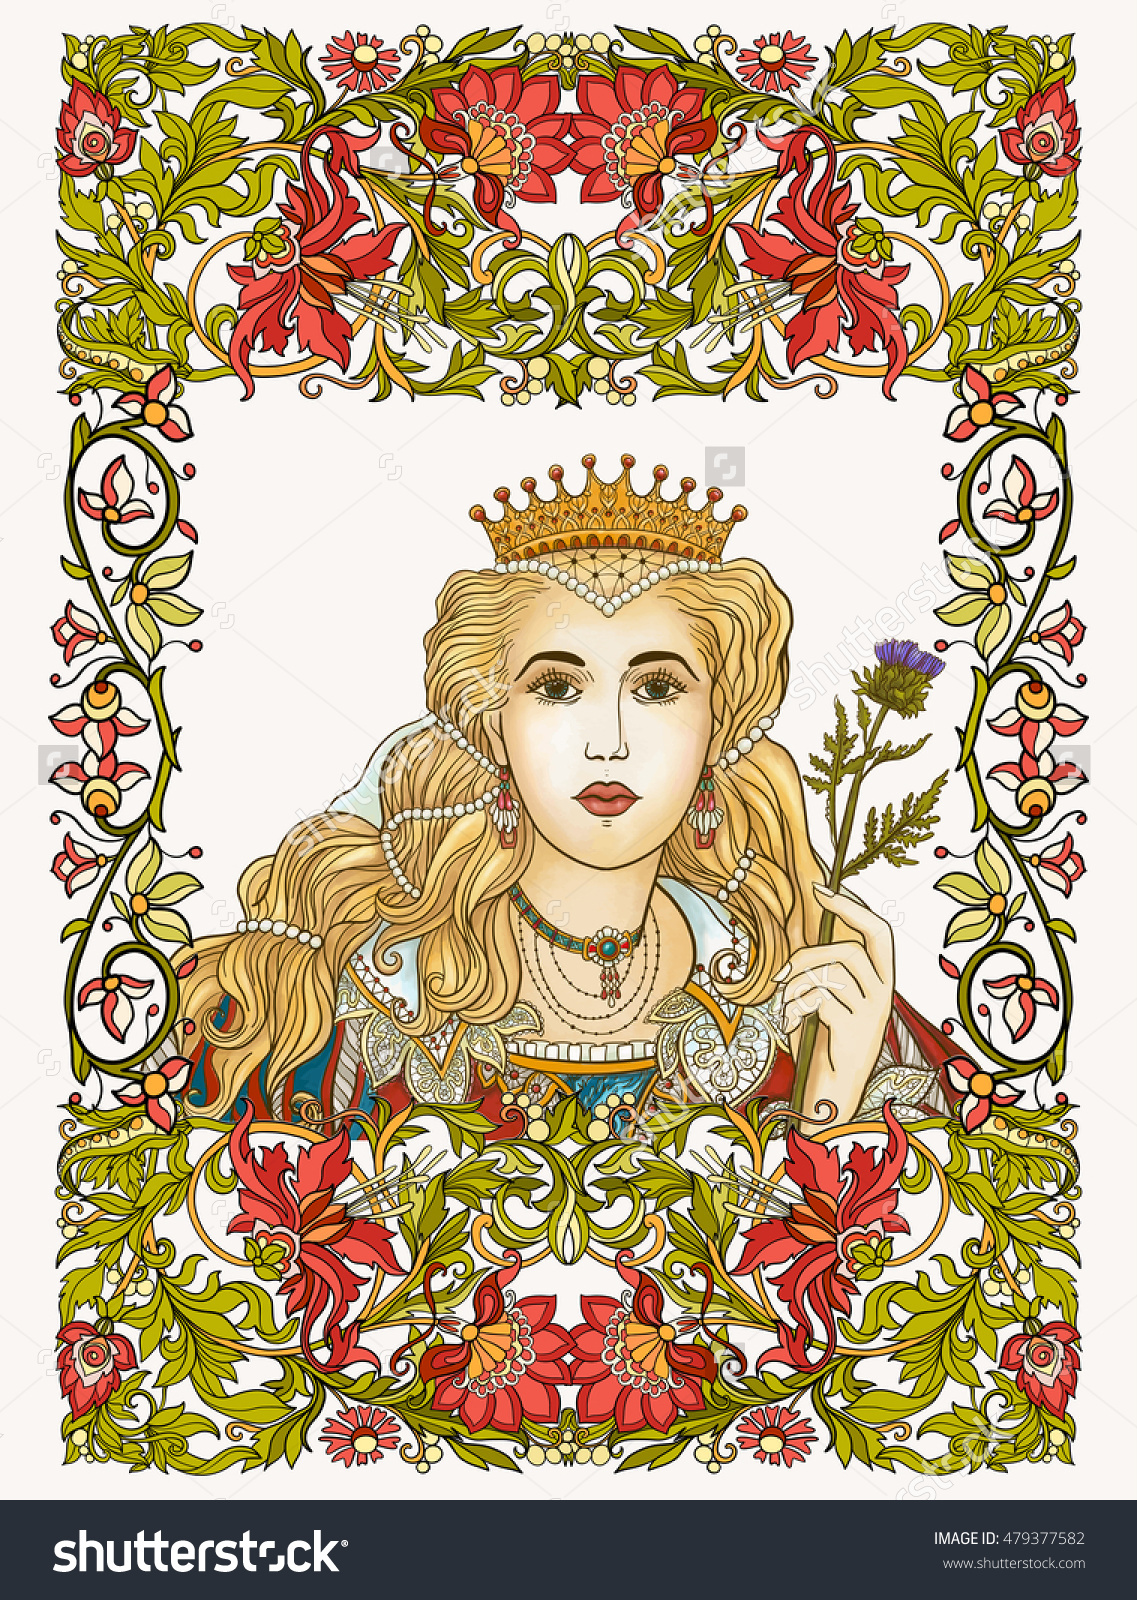 Medieval Queen On Floral Frame Vector Stock Vector 479377582.